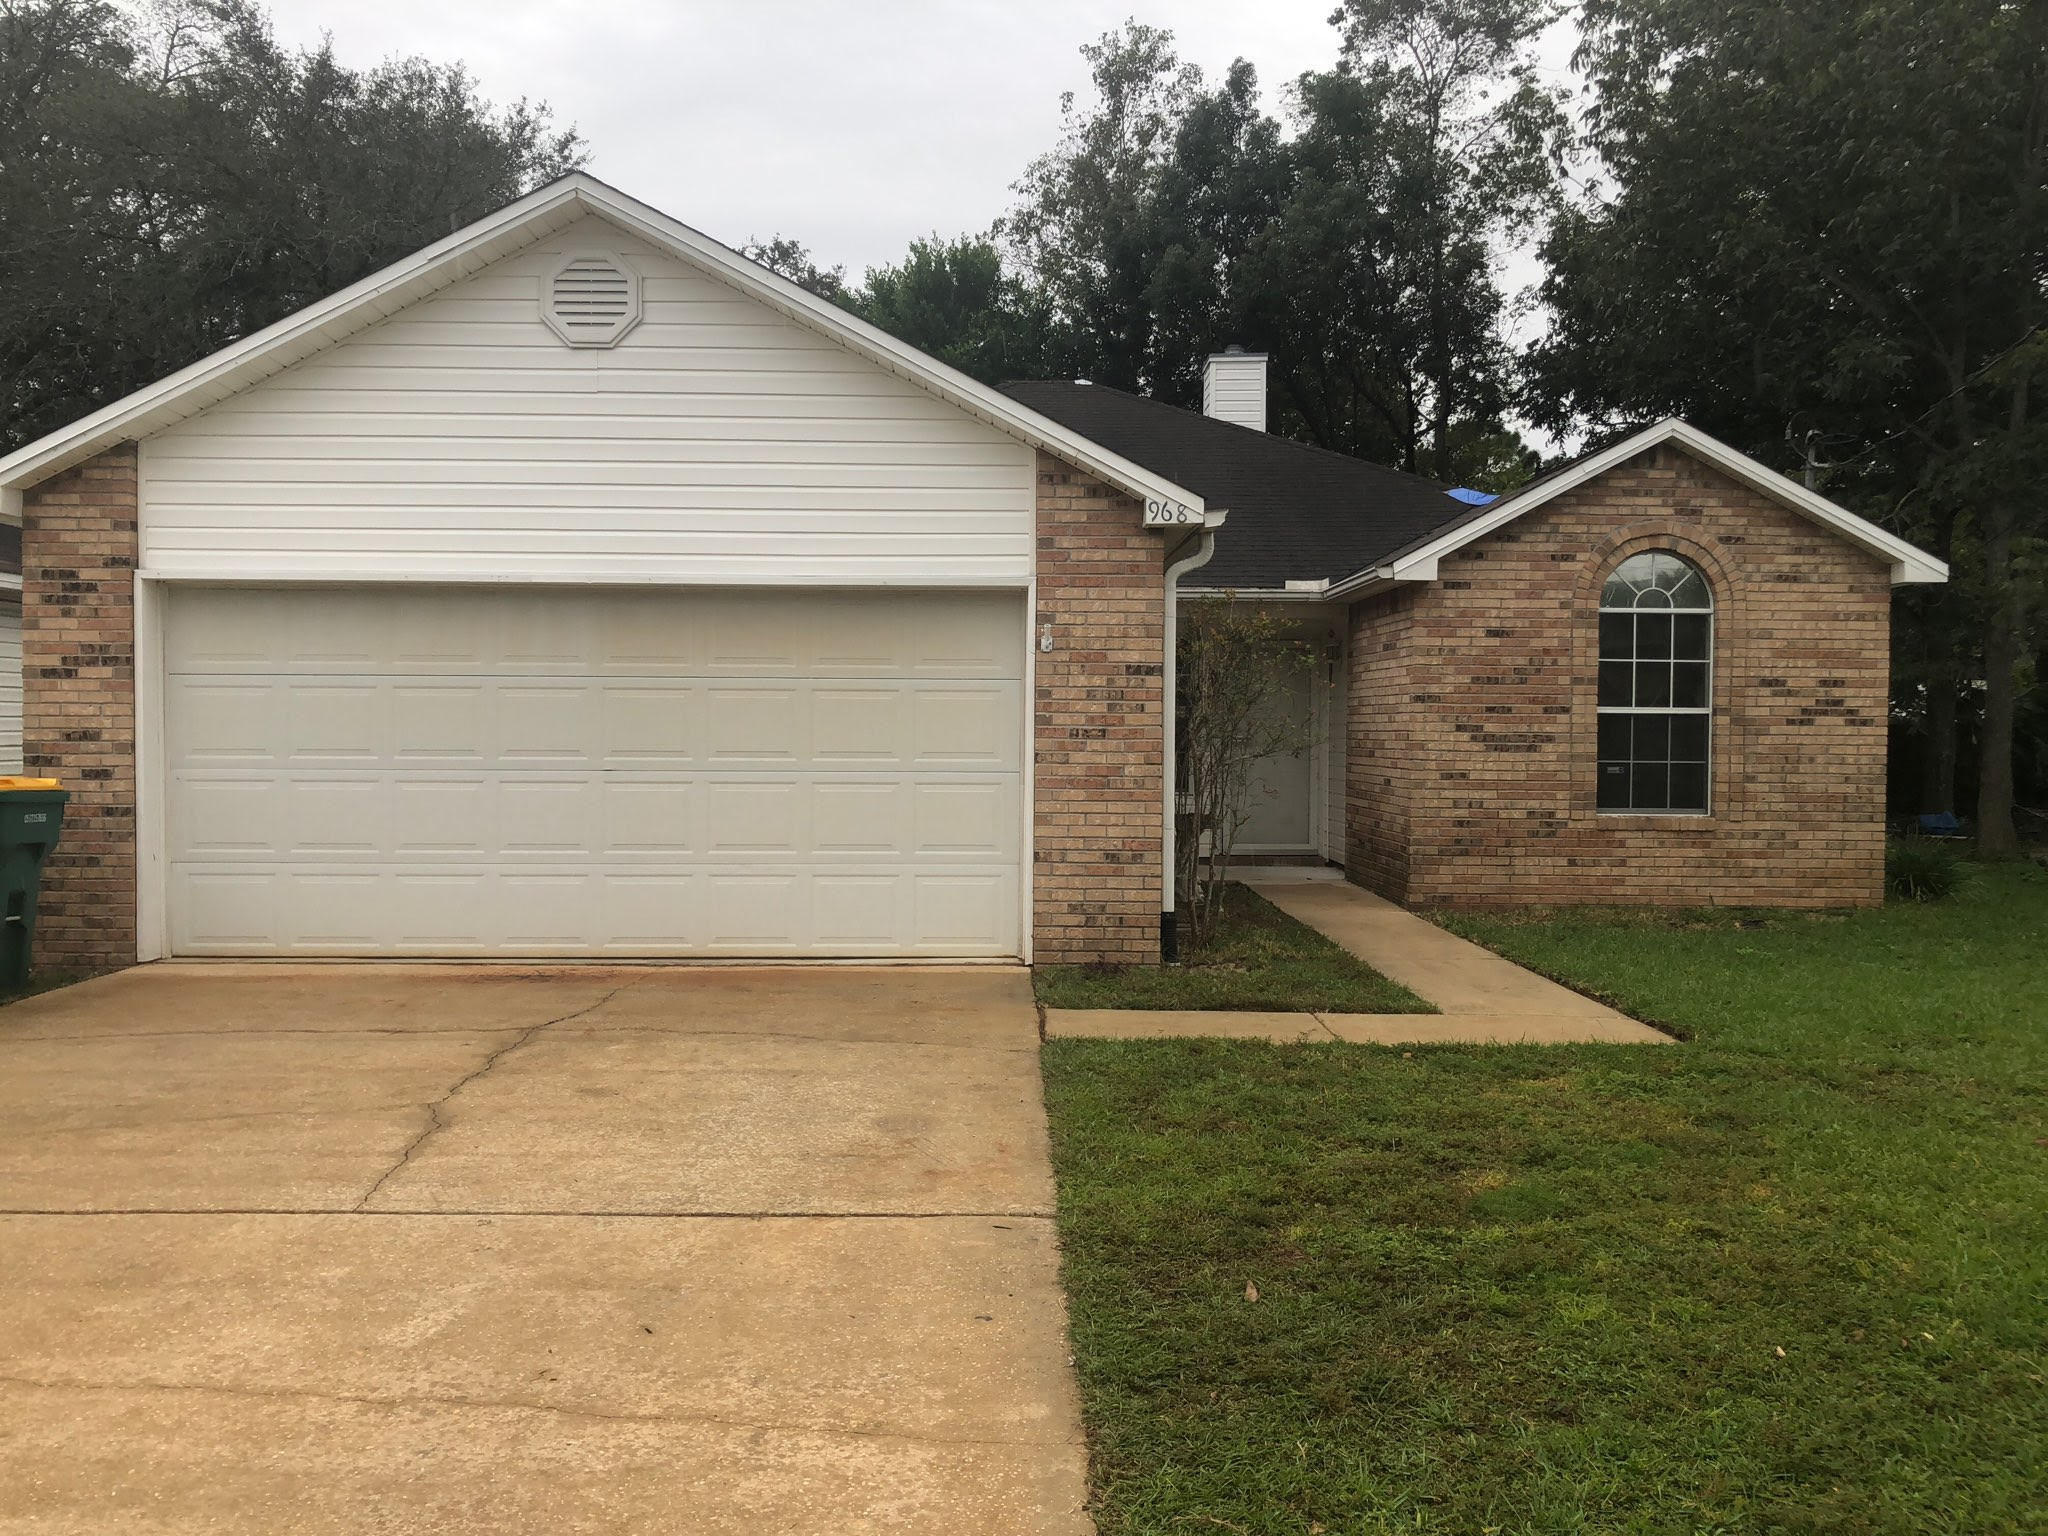 Photo of home for sale at 968 Southern Oaks, Fort Walton Beach FL